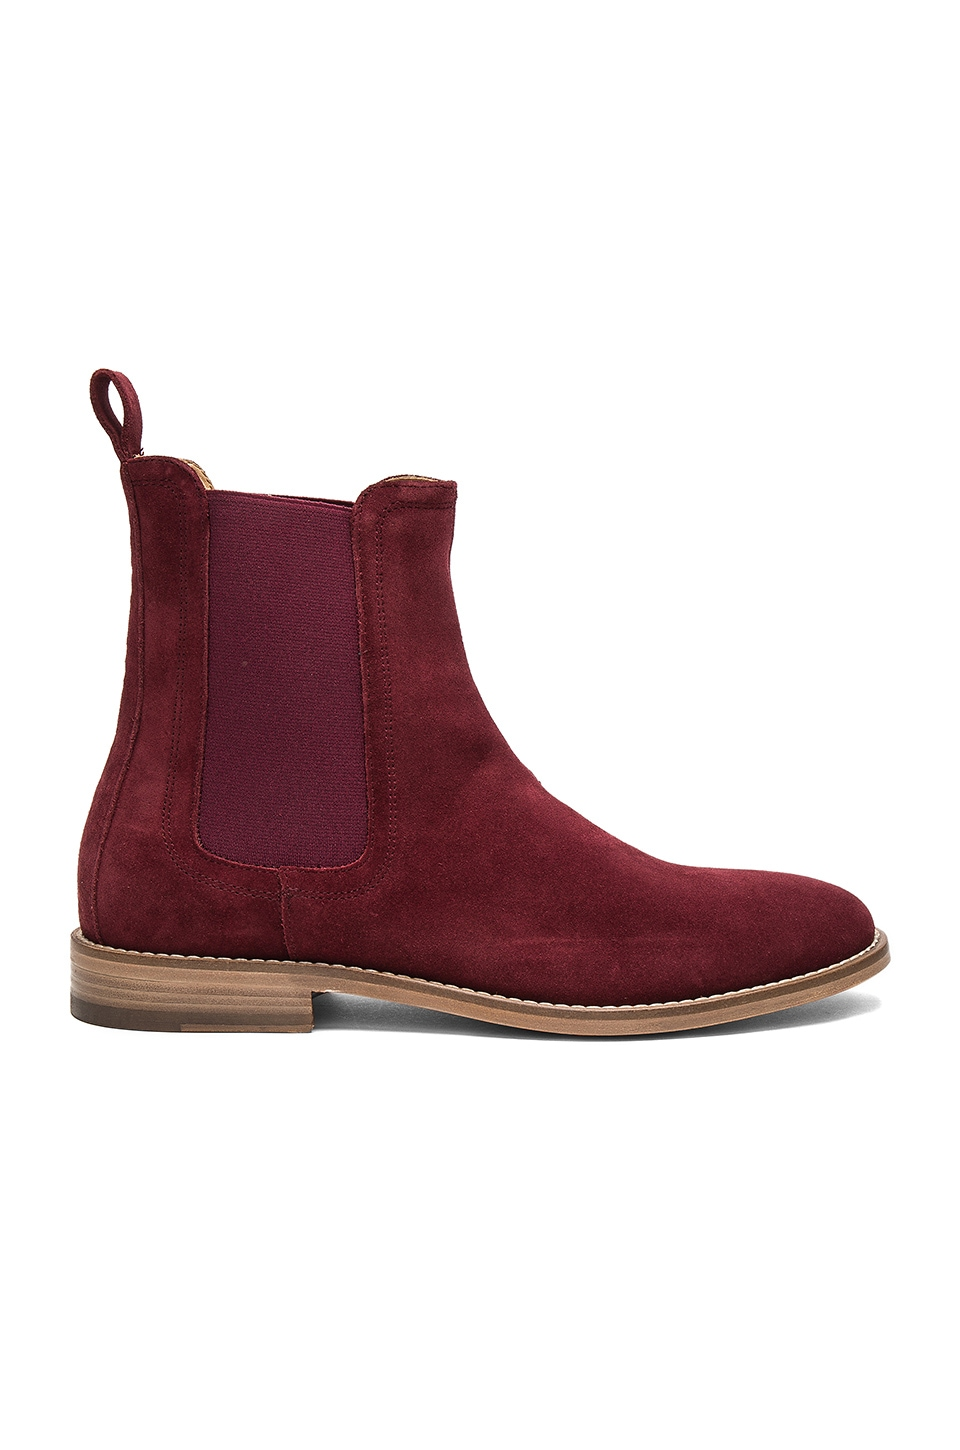 Chelsea Boots by REPRESENT